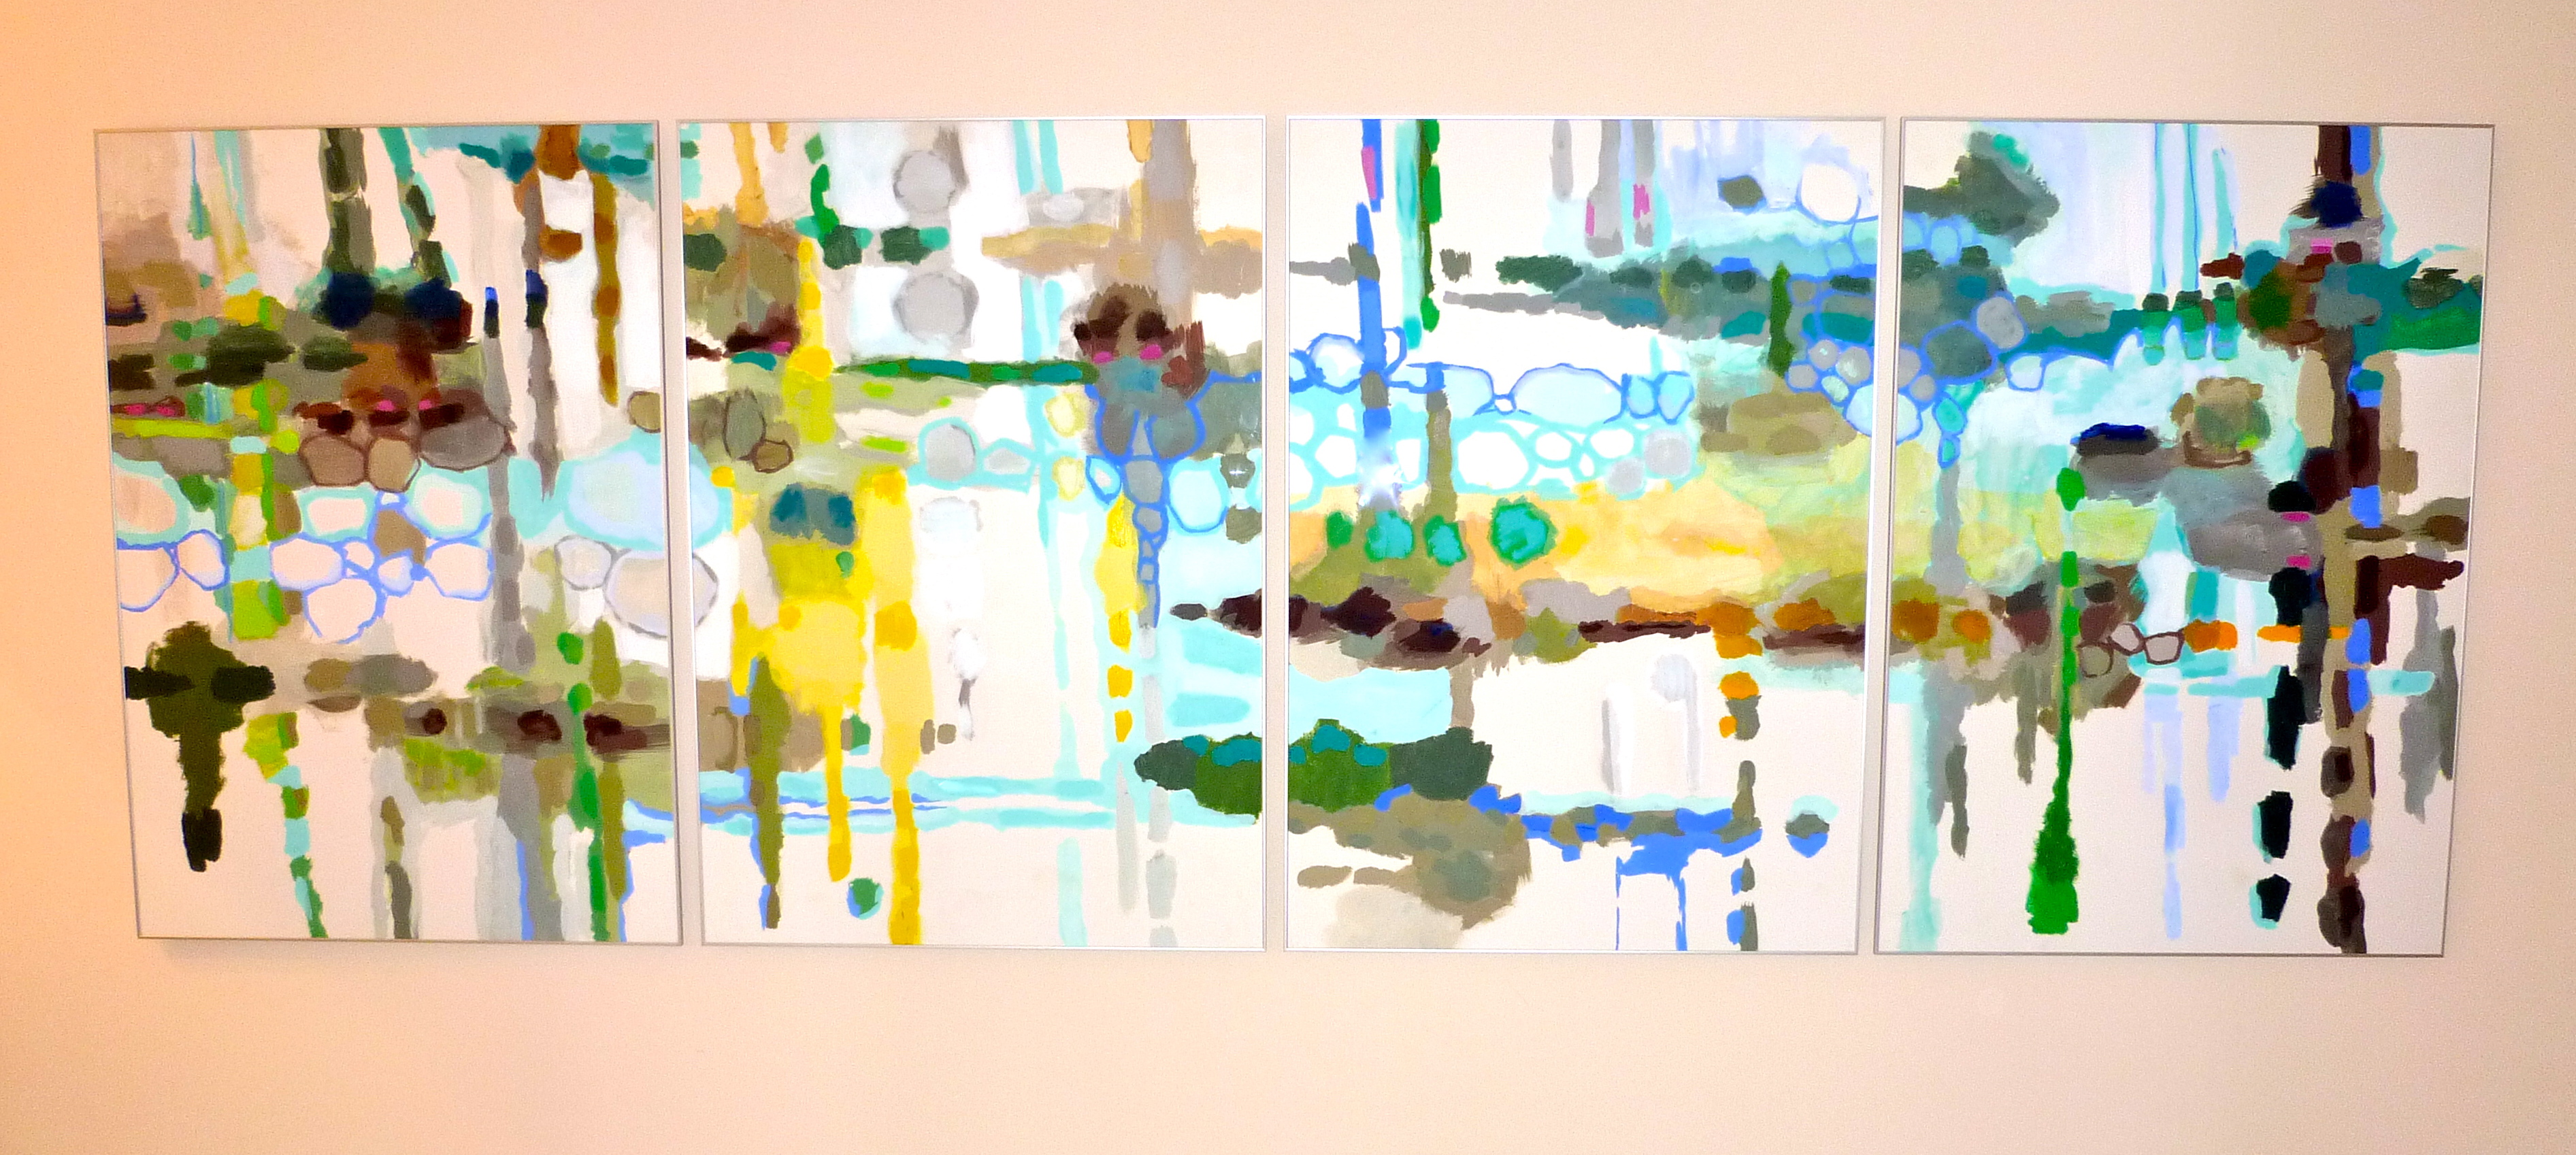 mixed media on paper, 280x100cm